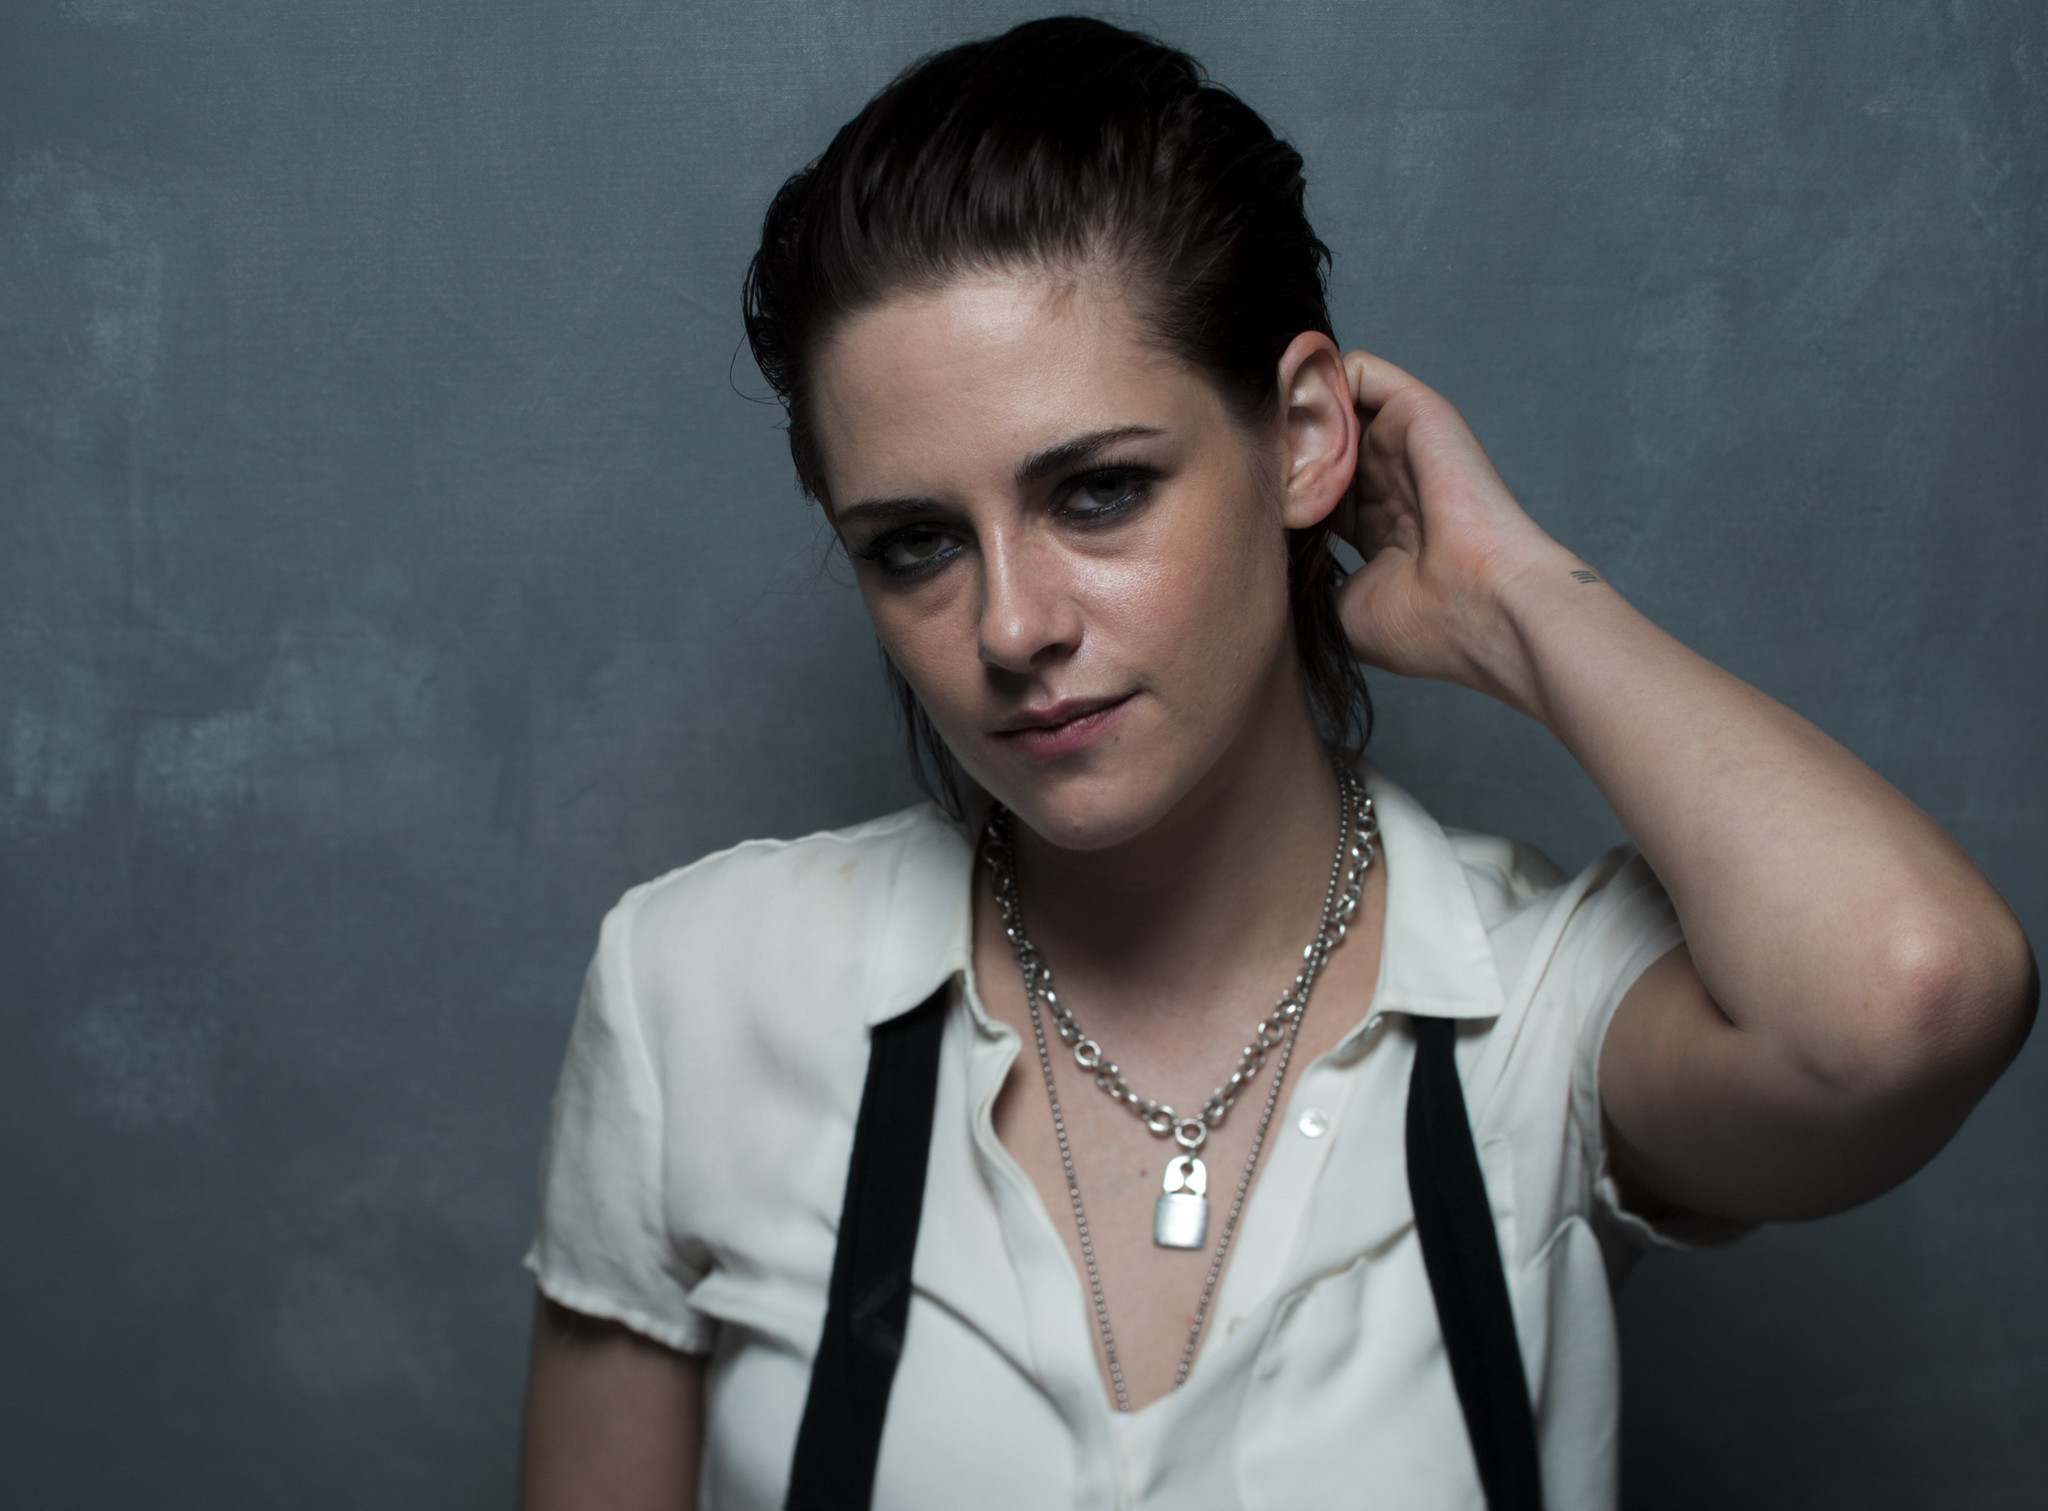 Kristen Stewart Directed A Film About Her Past Breakups